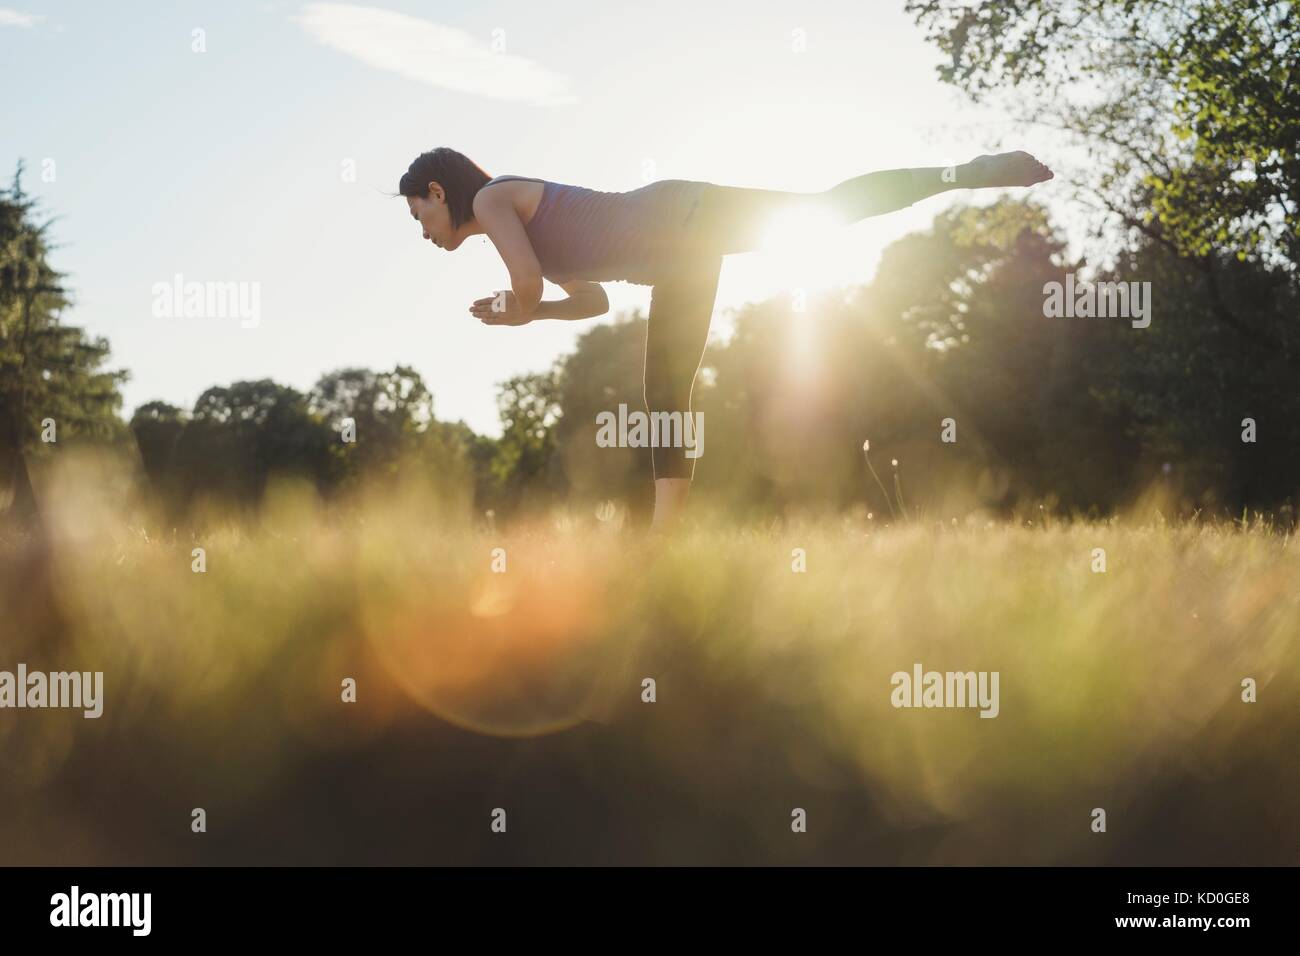 Mature woman in park, balancing on one leg, in yoga position, low angle view - Stock Image